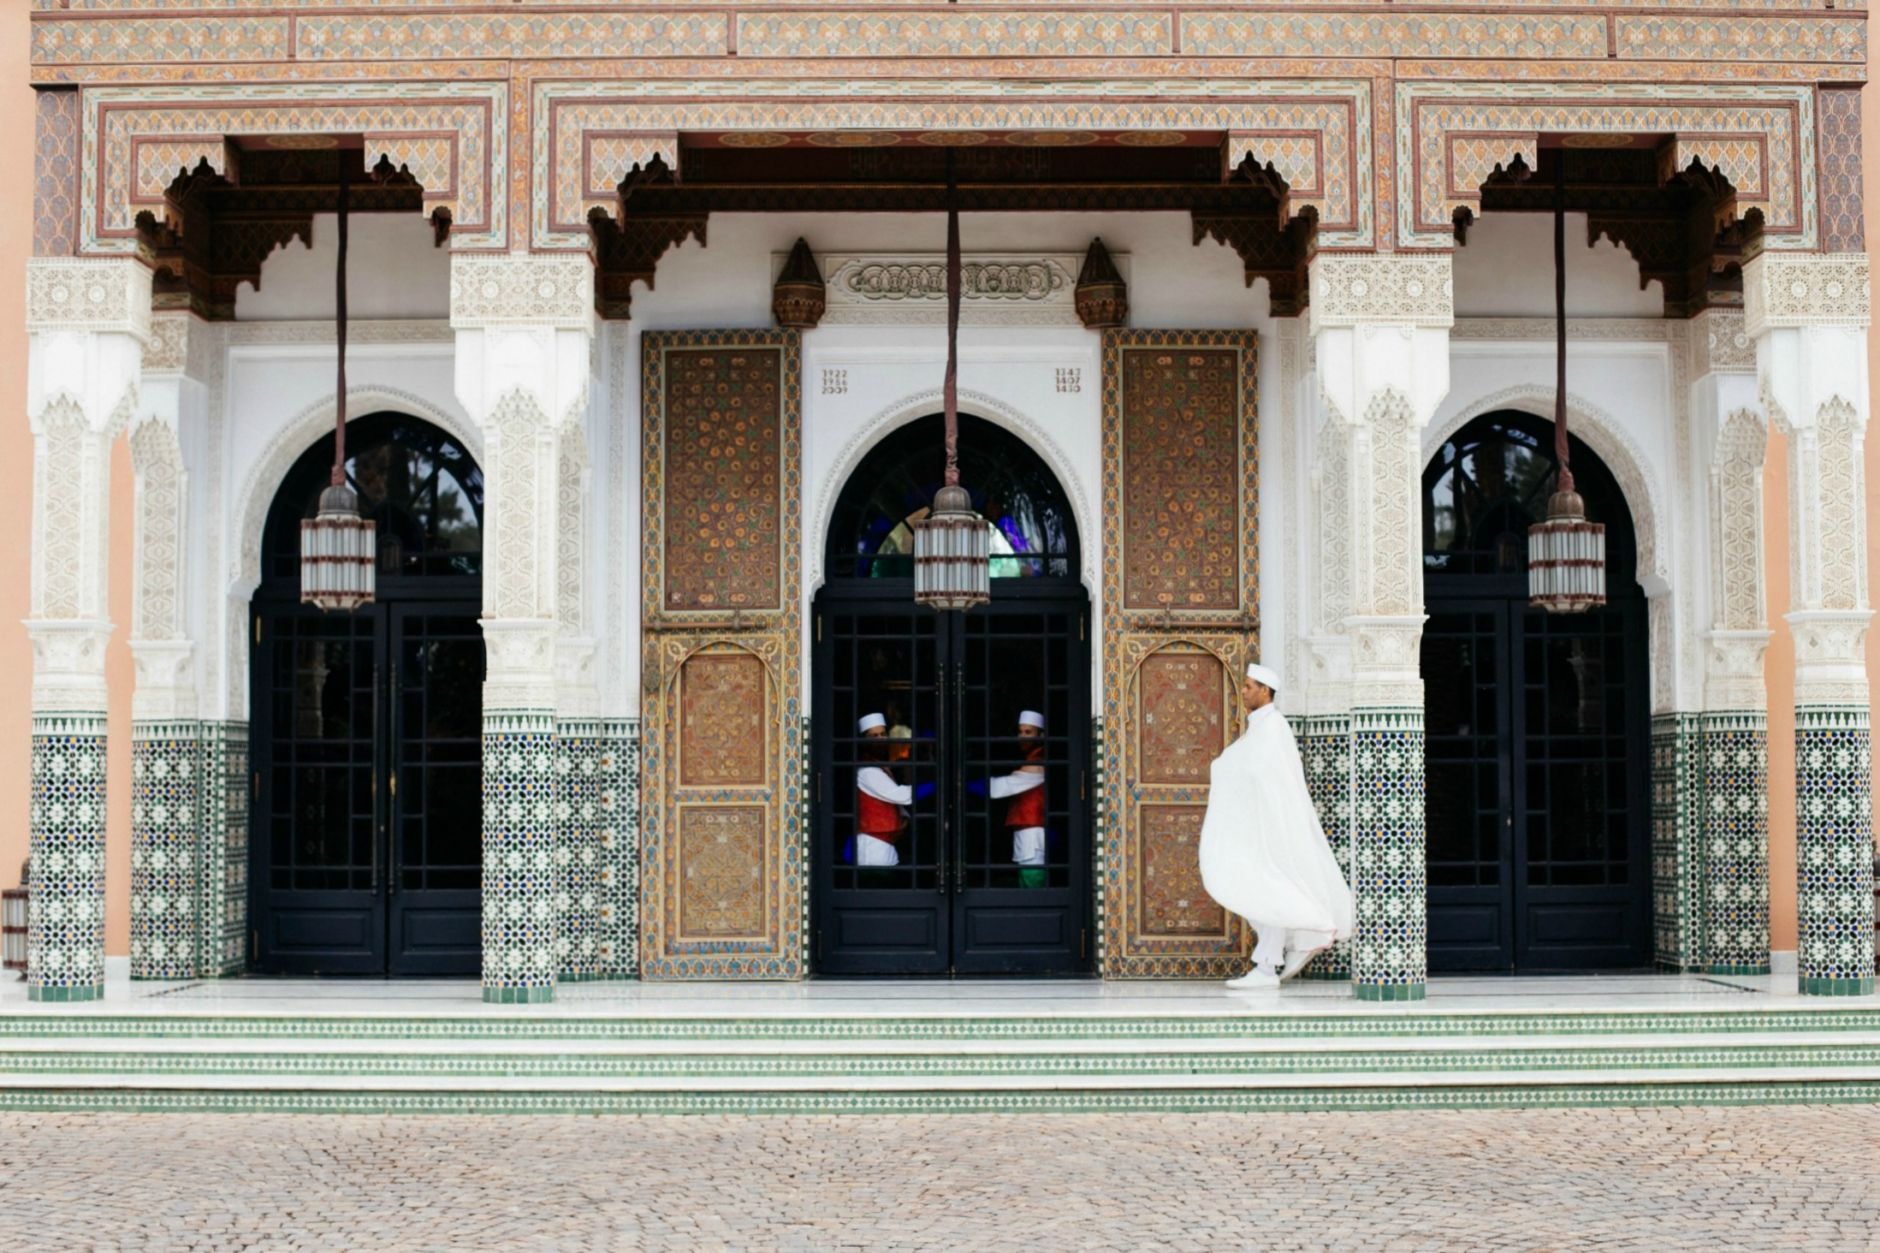 palace-in-marrakesh-morocco-la-mamounia-5-star-luxury-hotel-spa-14